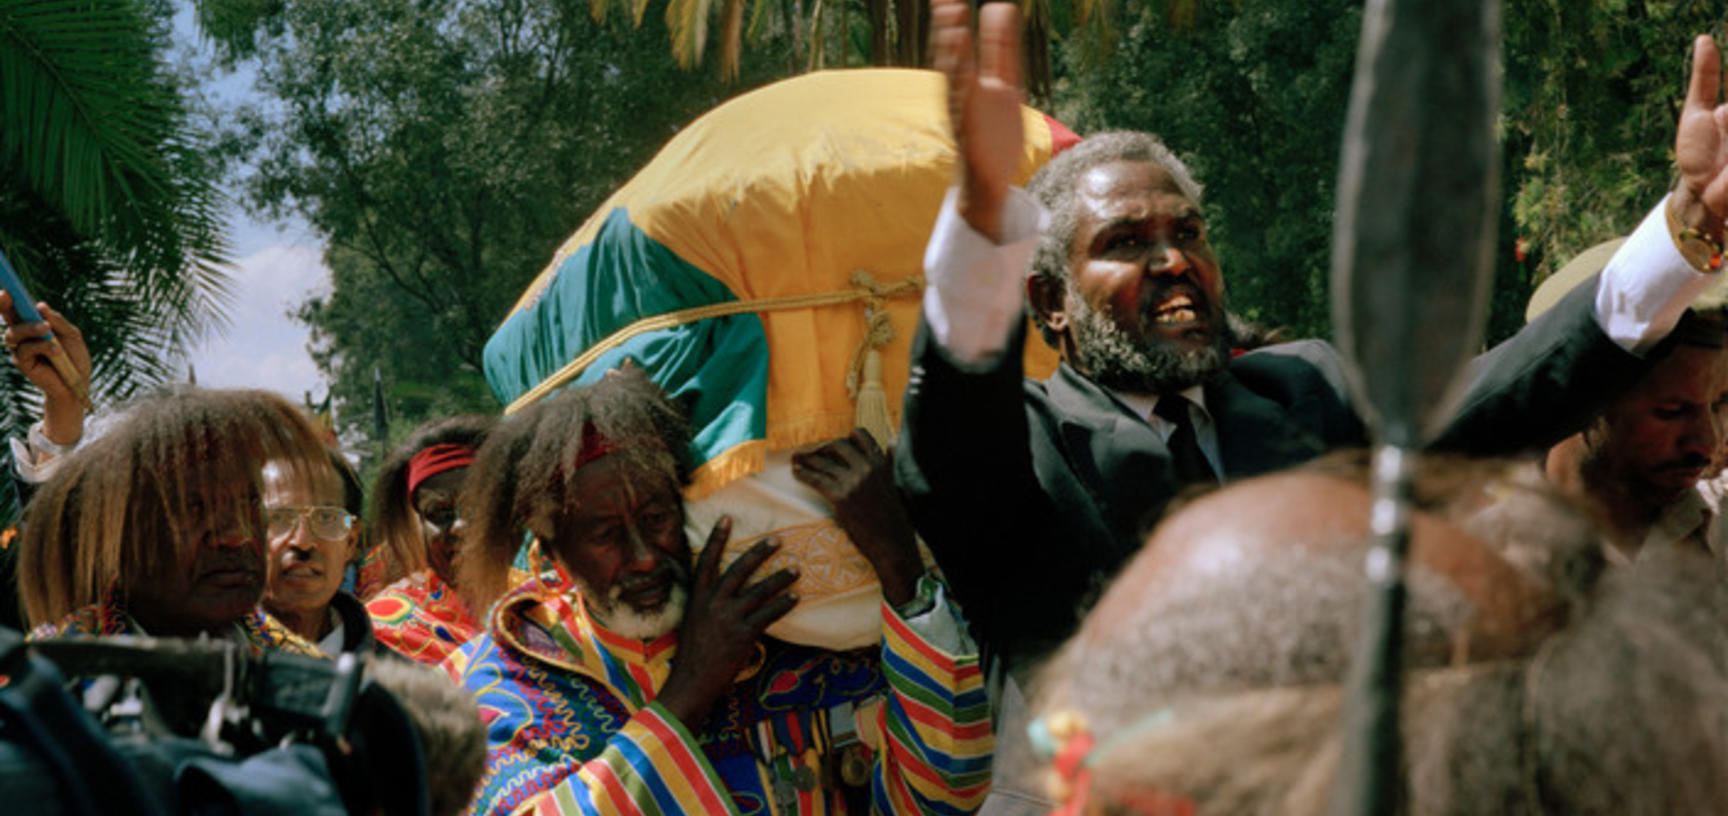 Veteran soldiers carry the Emperor's coffin towards Trinity Cathedral, as a man calls out praises. Addis Ababa, Ethiopia. Photograph by Peter Marlow. 2000.